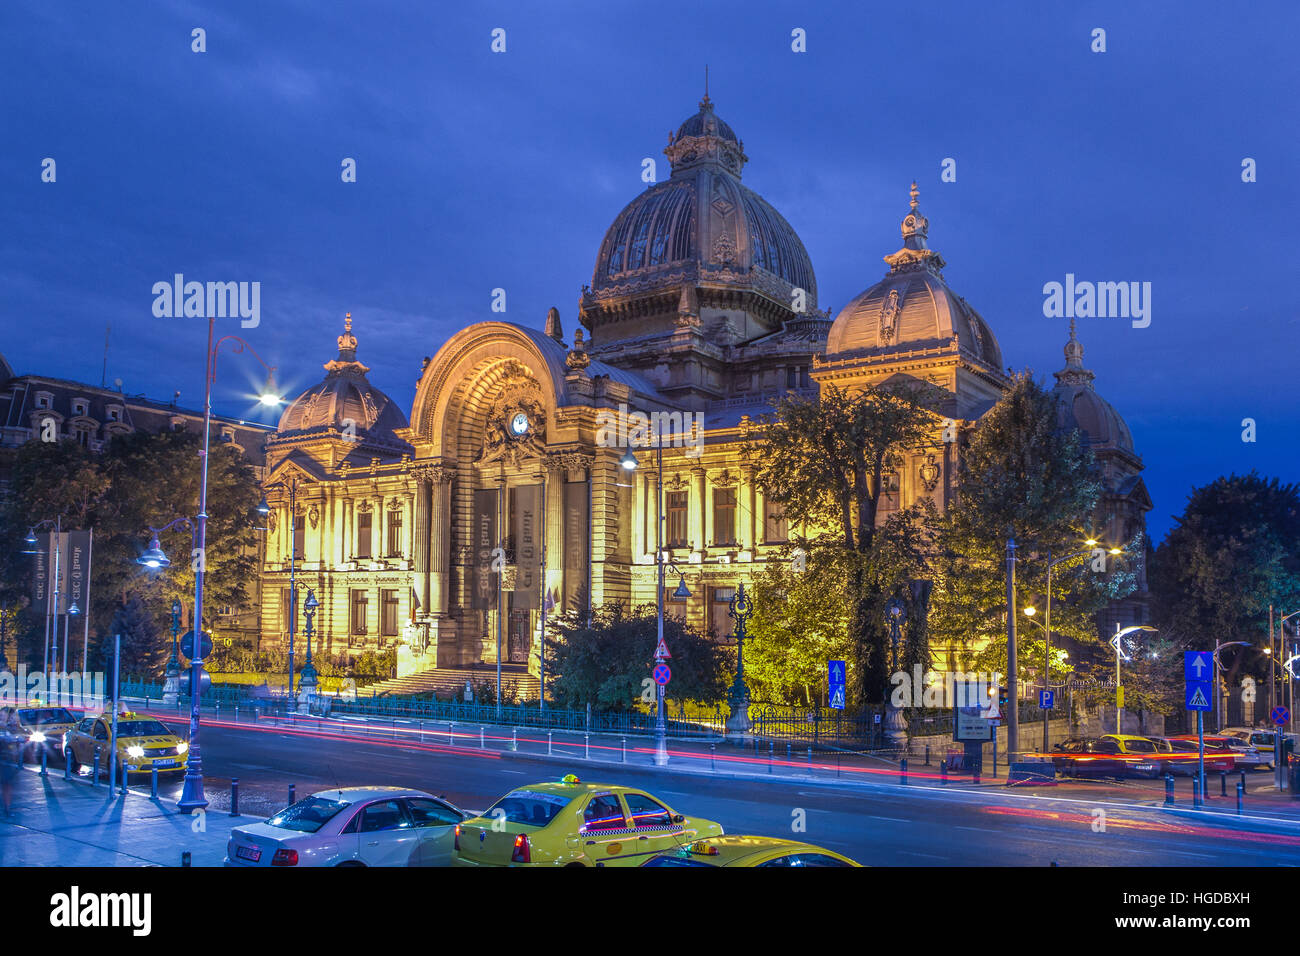 Romania, Bucharest City, The CEC Palace, former Bank - Stock Image